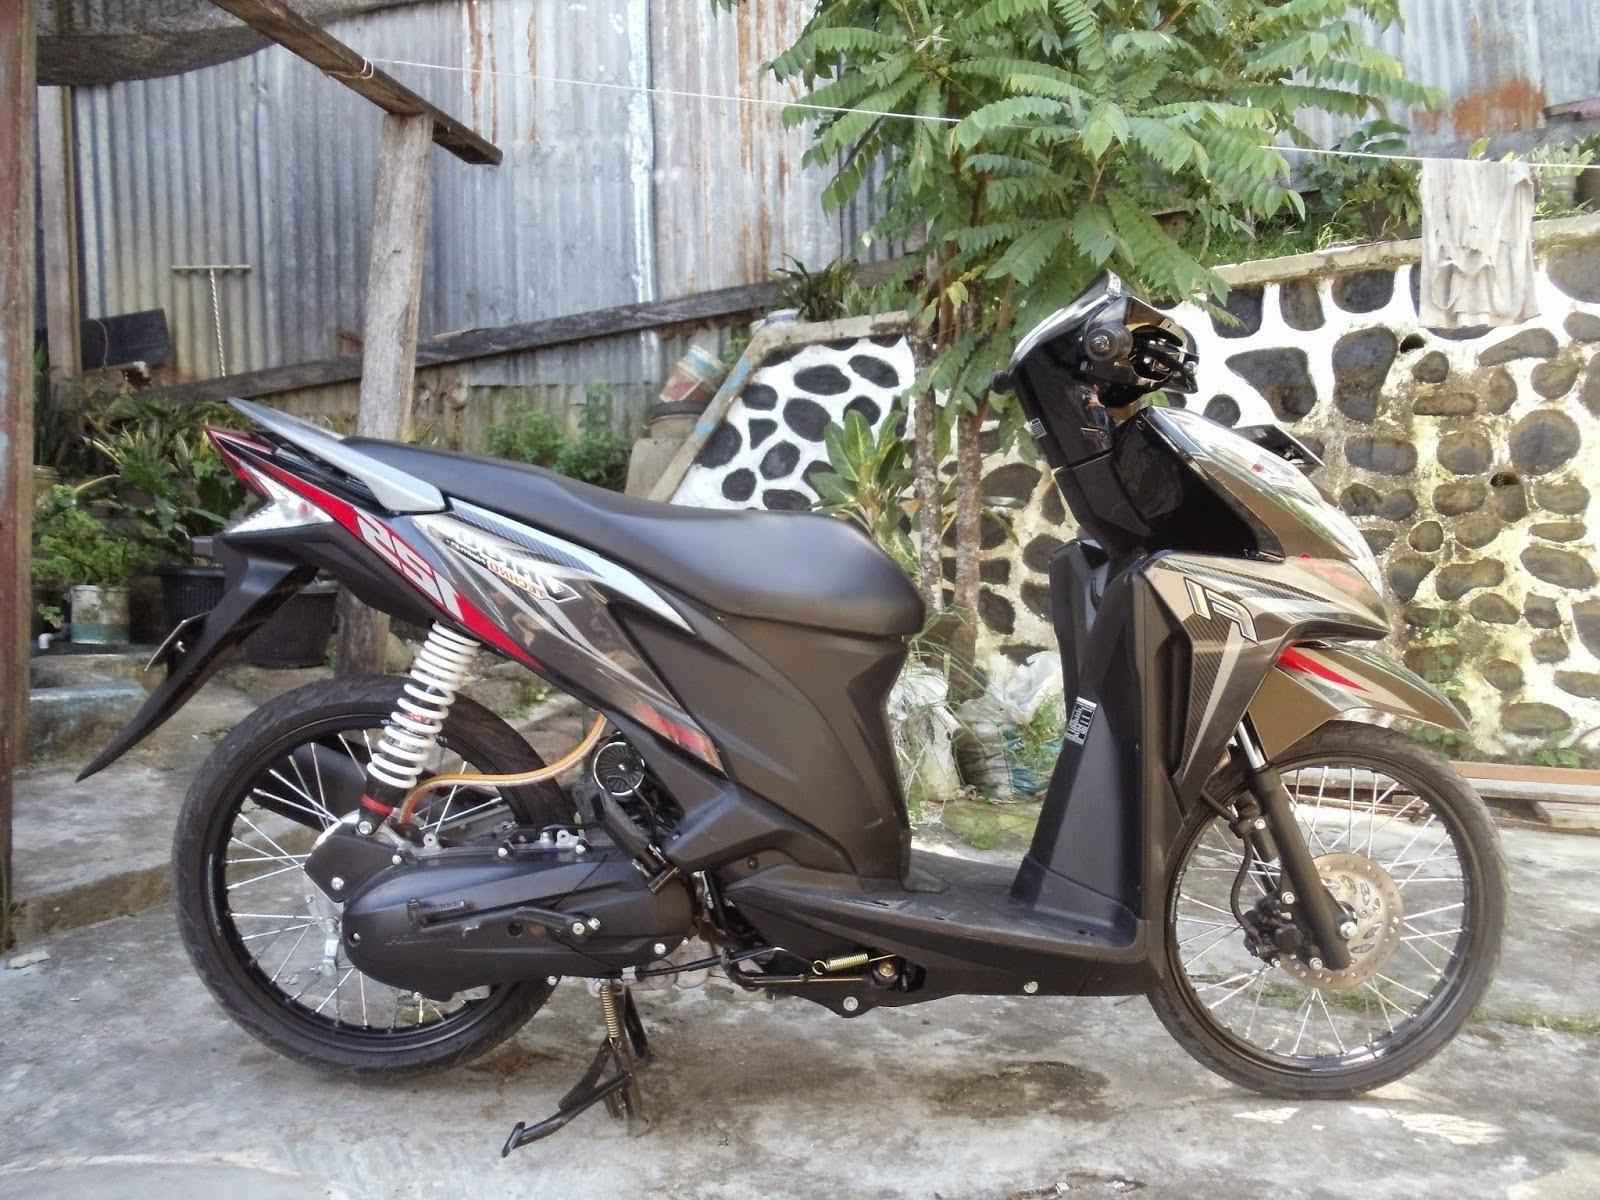 Gambar Modifikasi Motor Vario 2012 Terupdate Earth Modification